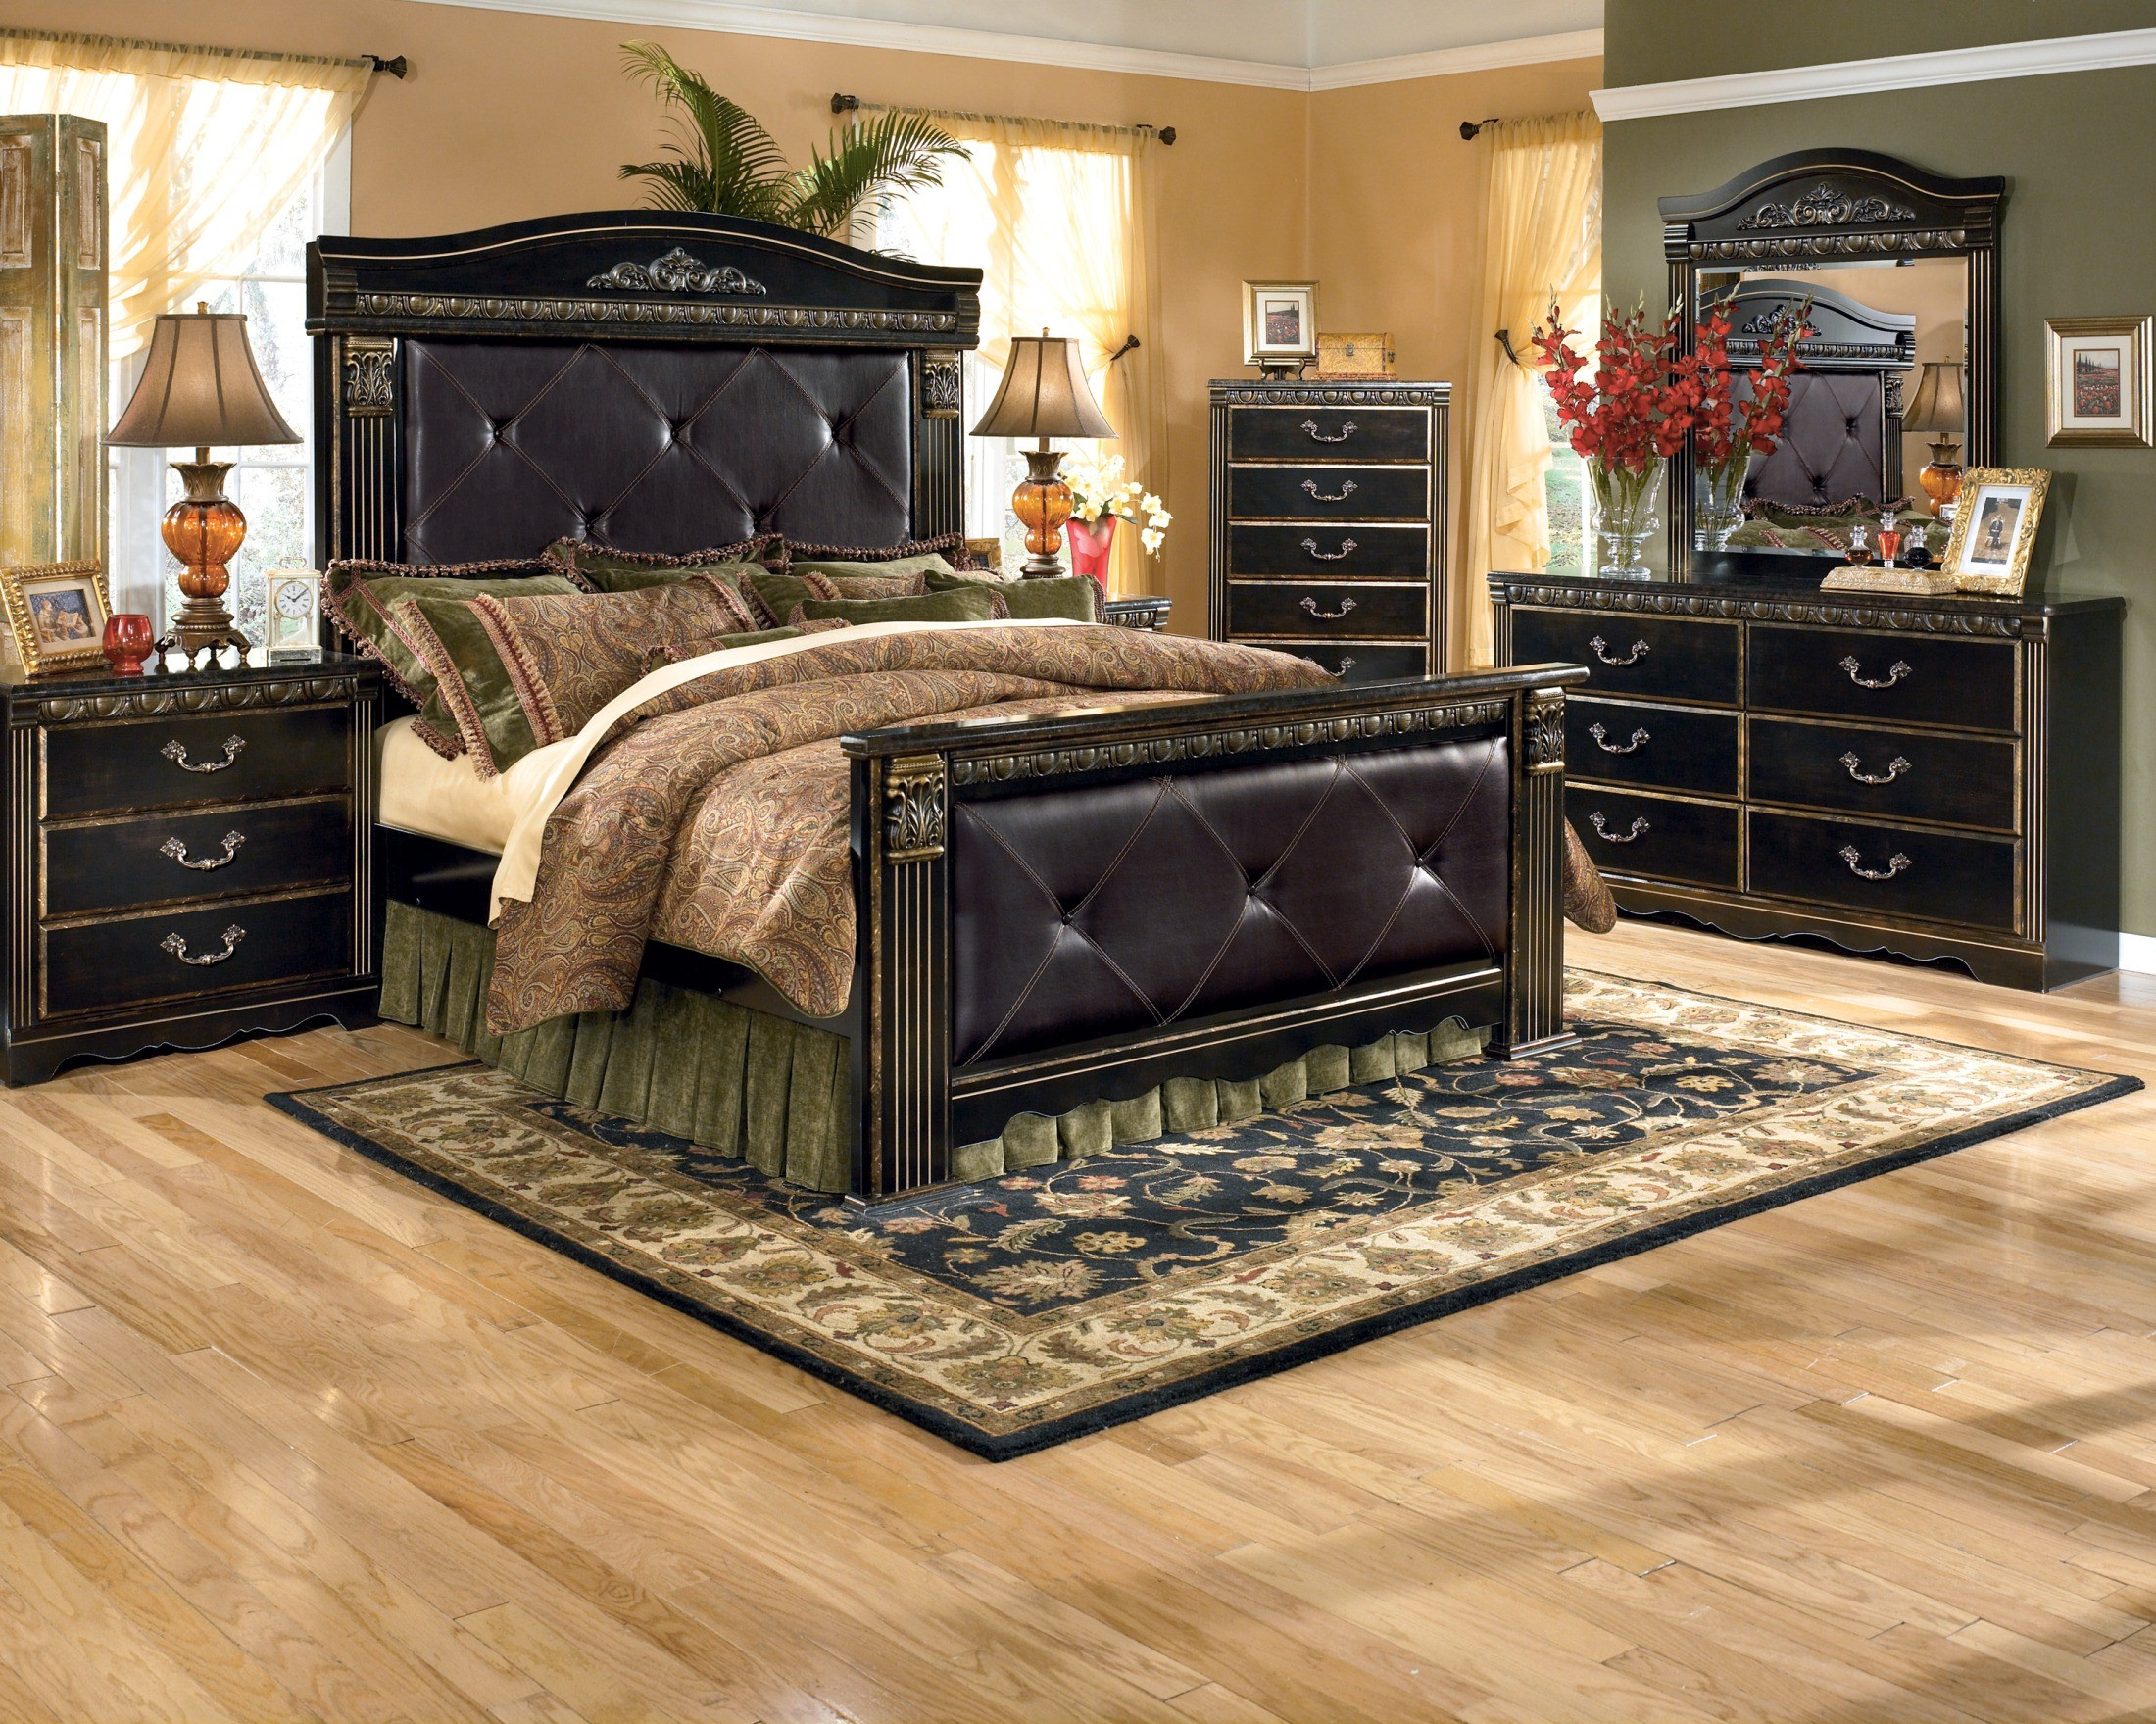 coal creek black personals Coal creek country primitive quilt bedding, black and tan patchwork design see website for 15% discount & free s/h.